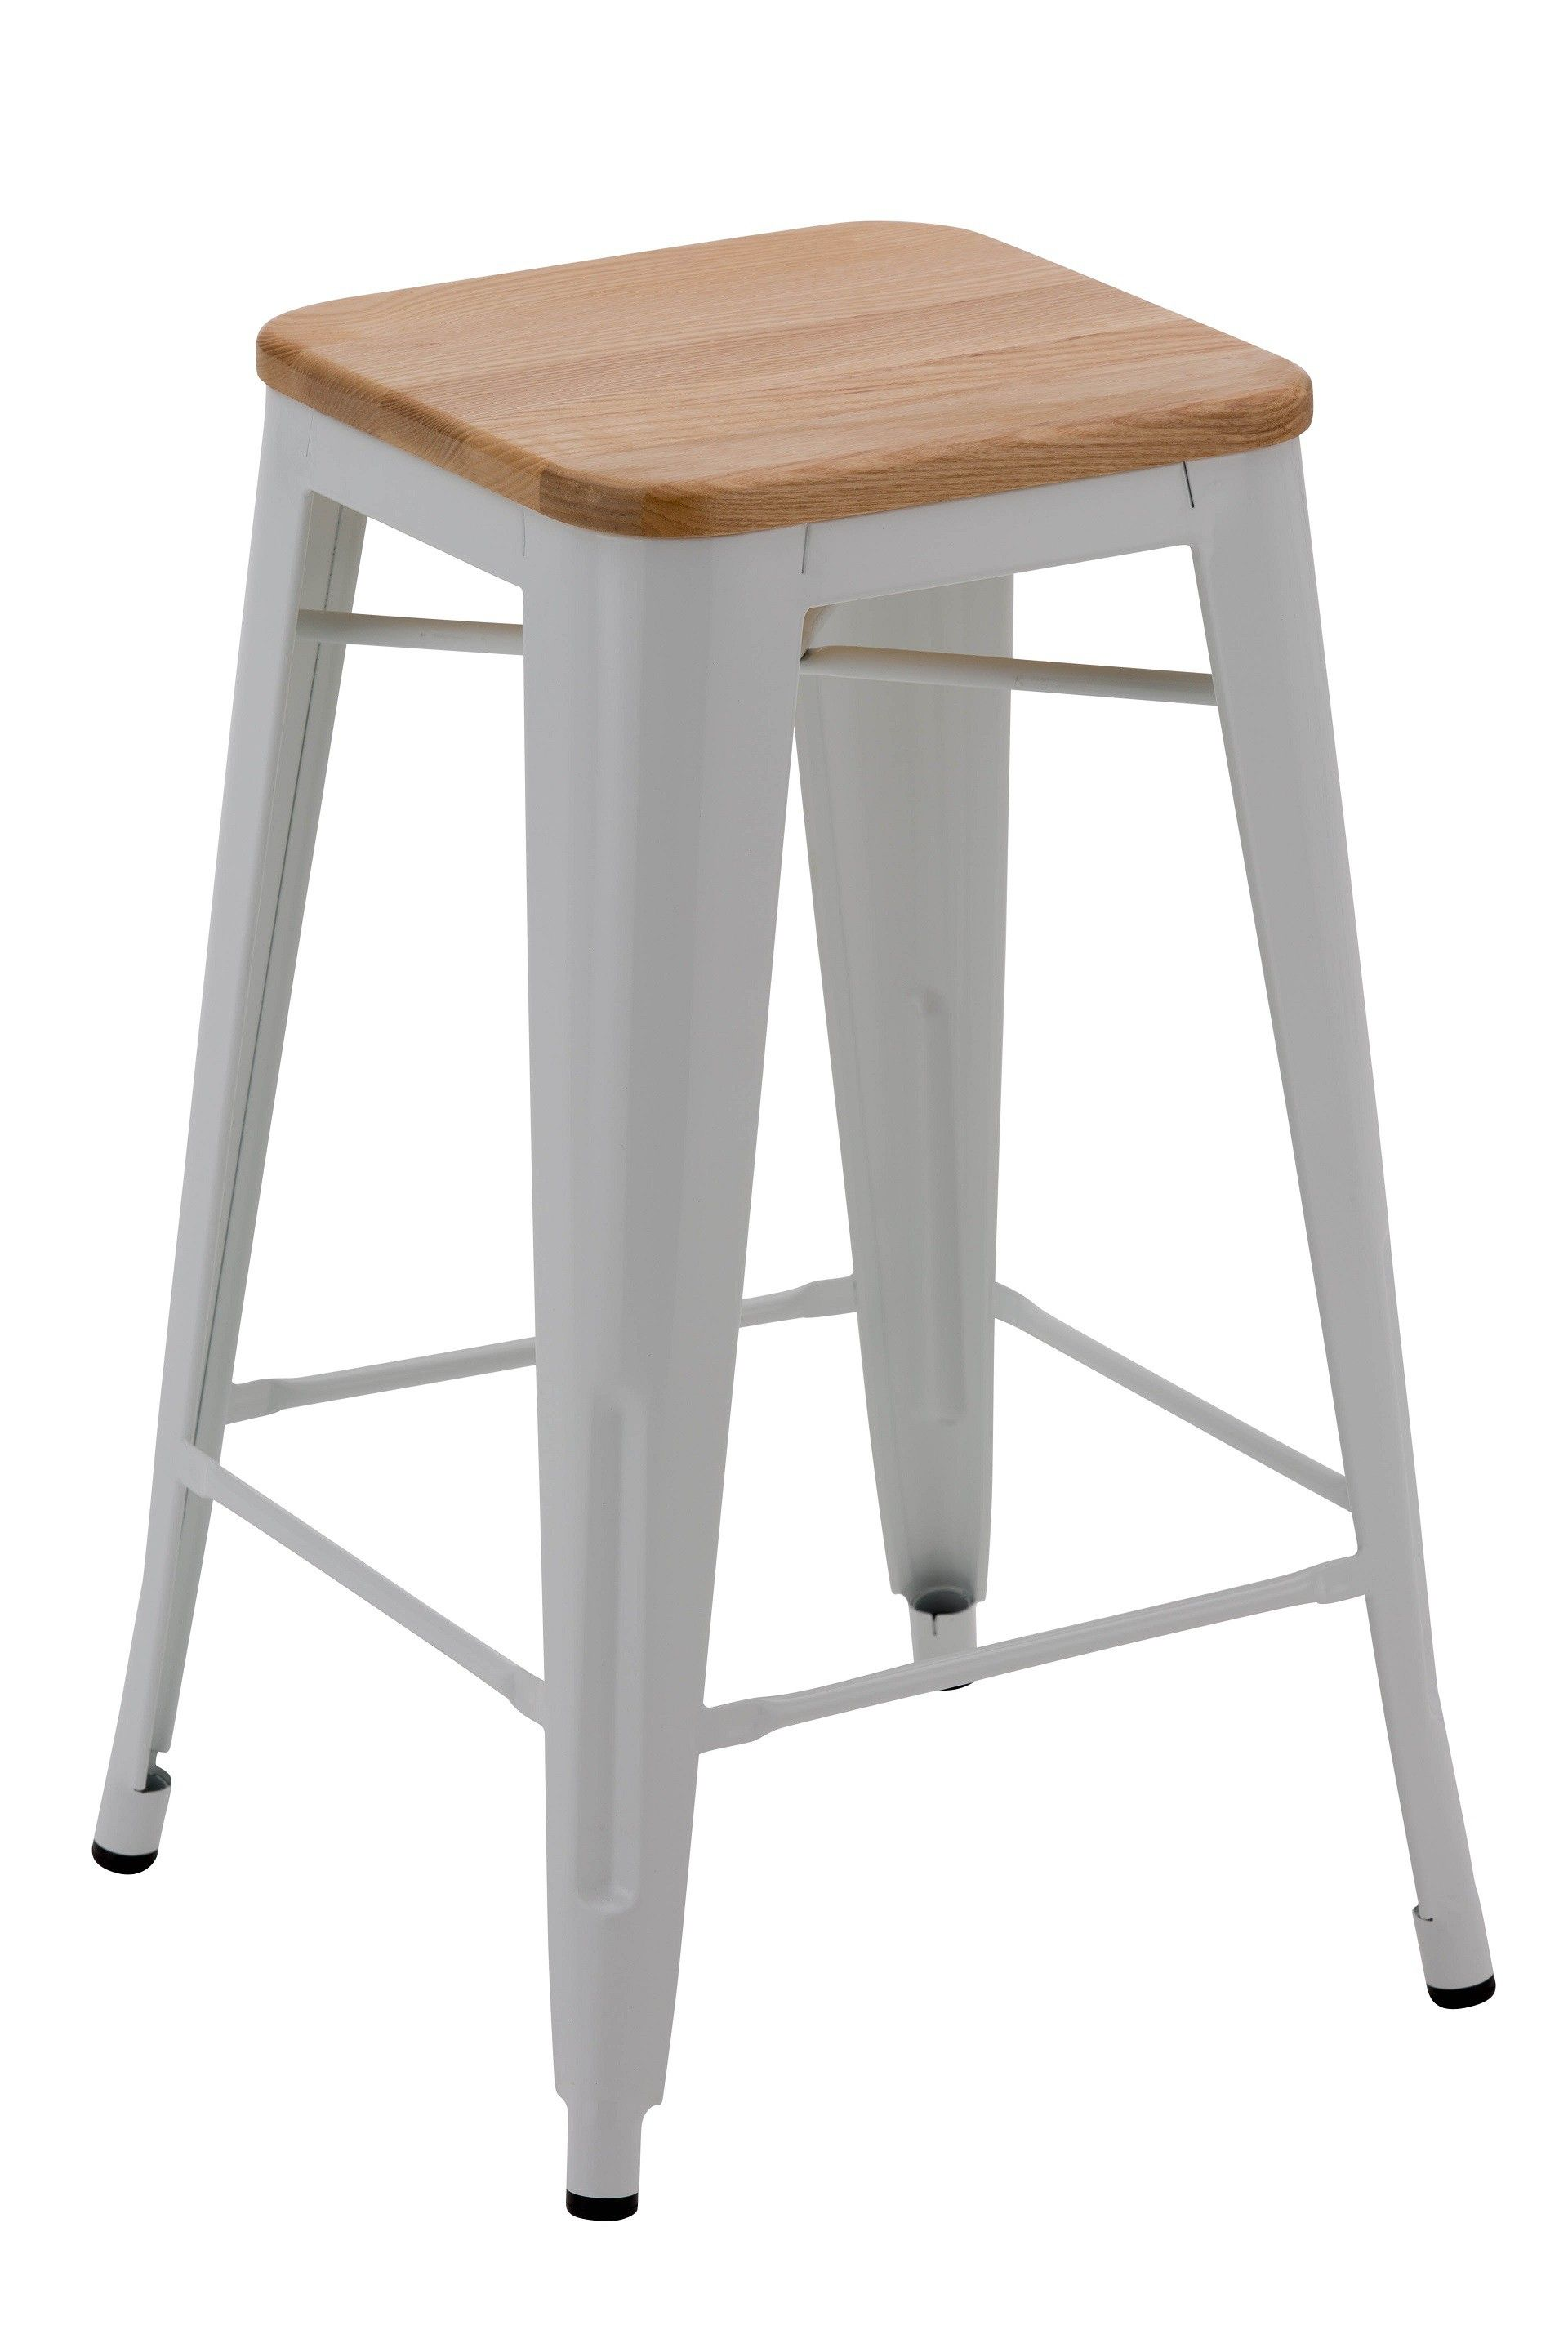 Cool Replica Xavier Pauchard Stool White Wood Top 66Cm This Creativecarmelina Interior Chair Design Creativecarmelinacom